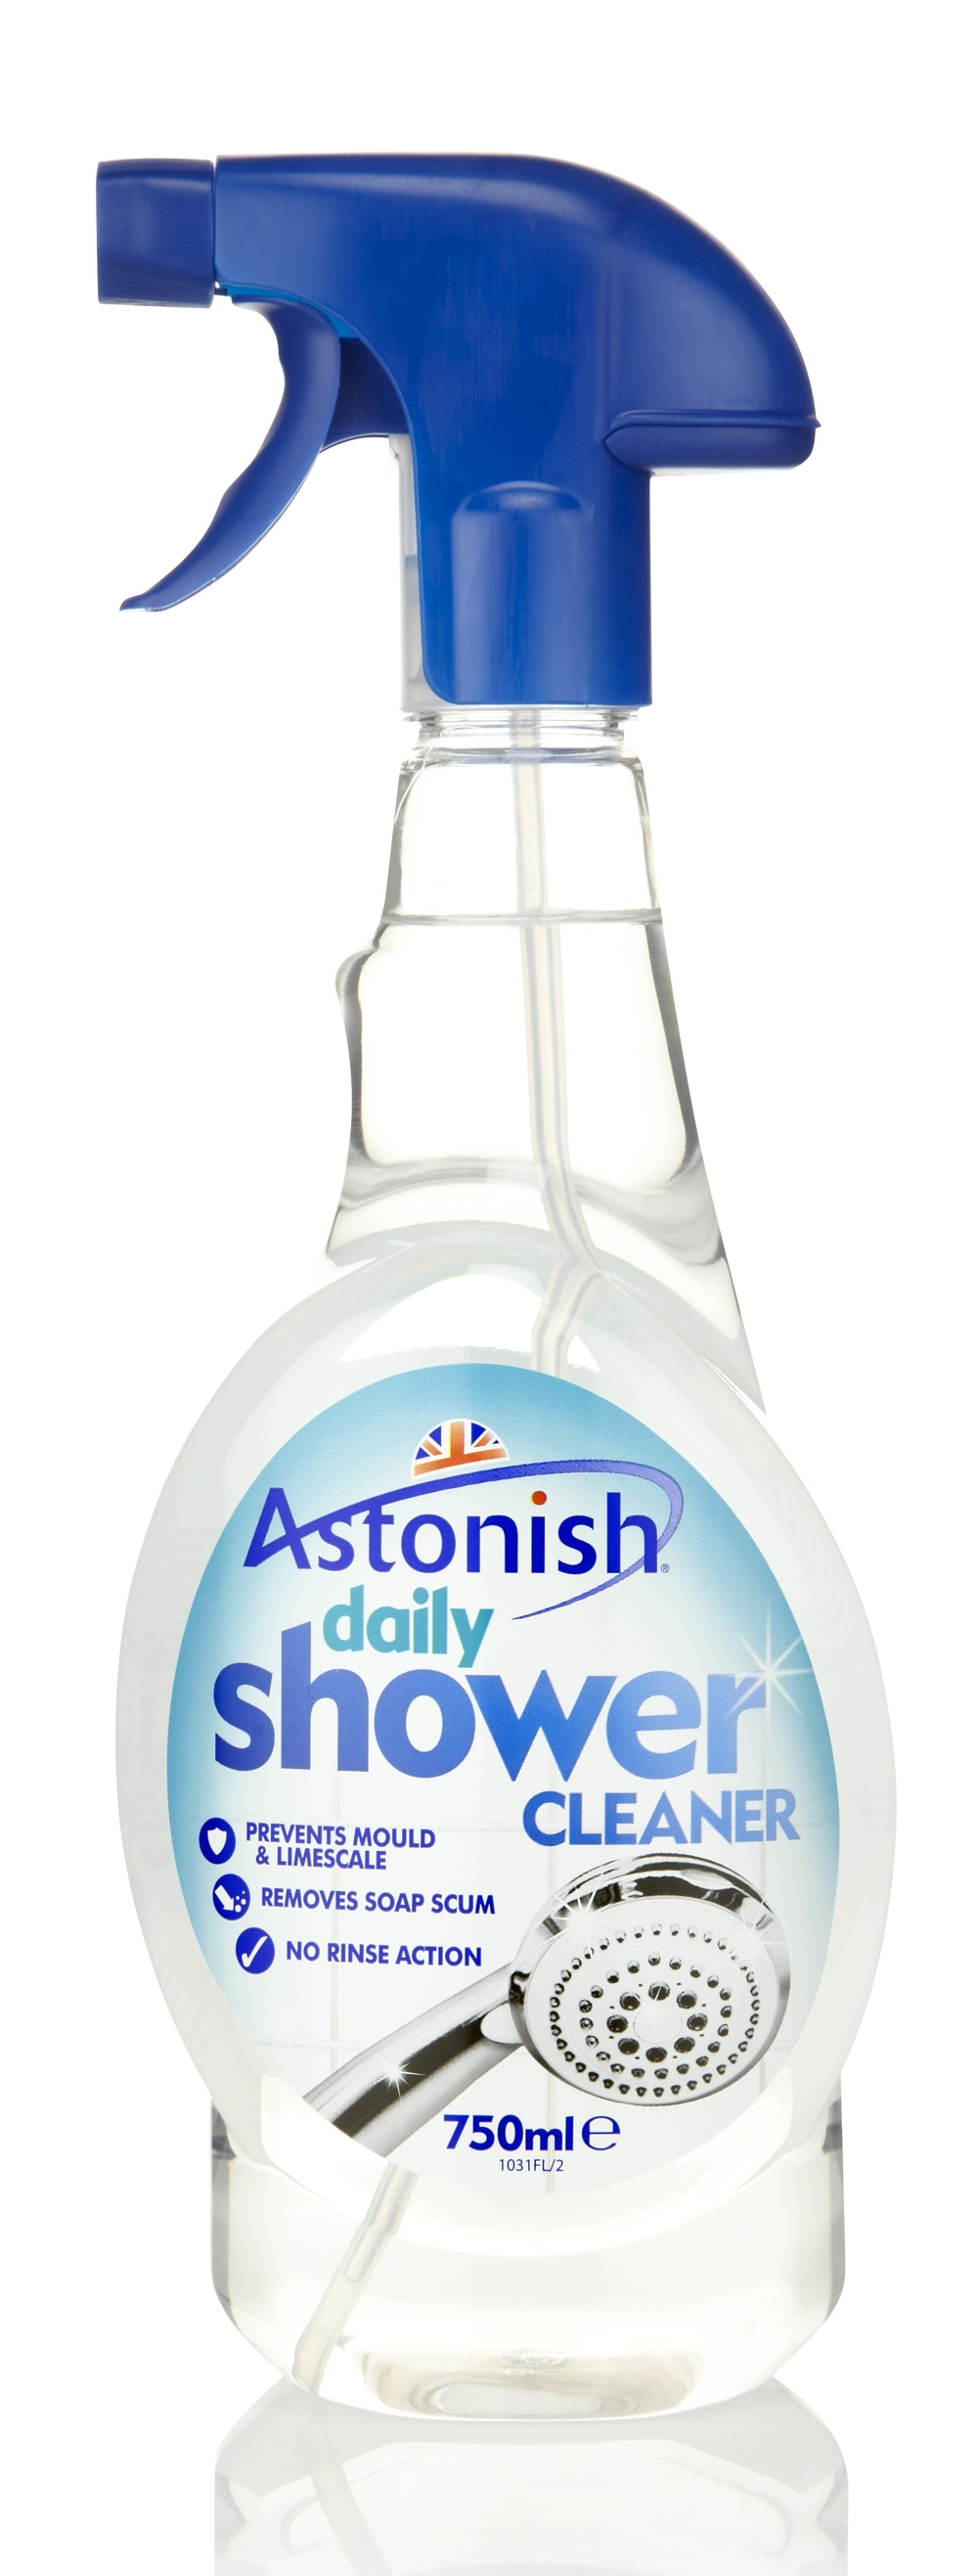 Astonish Daily Shower Cleaner 750ml trigger.jpg